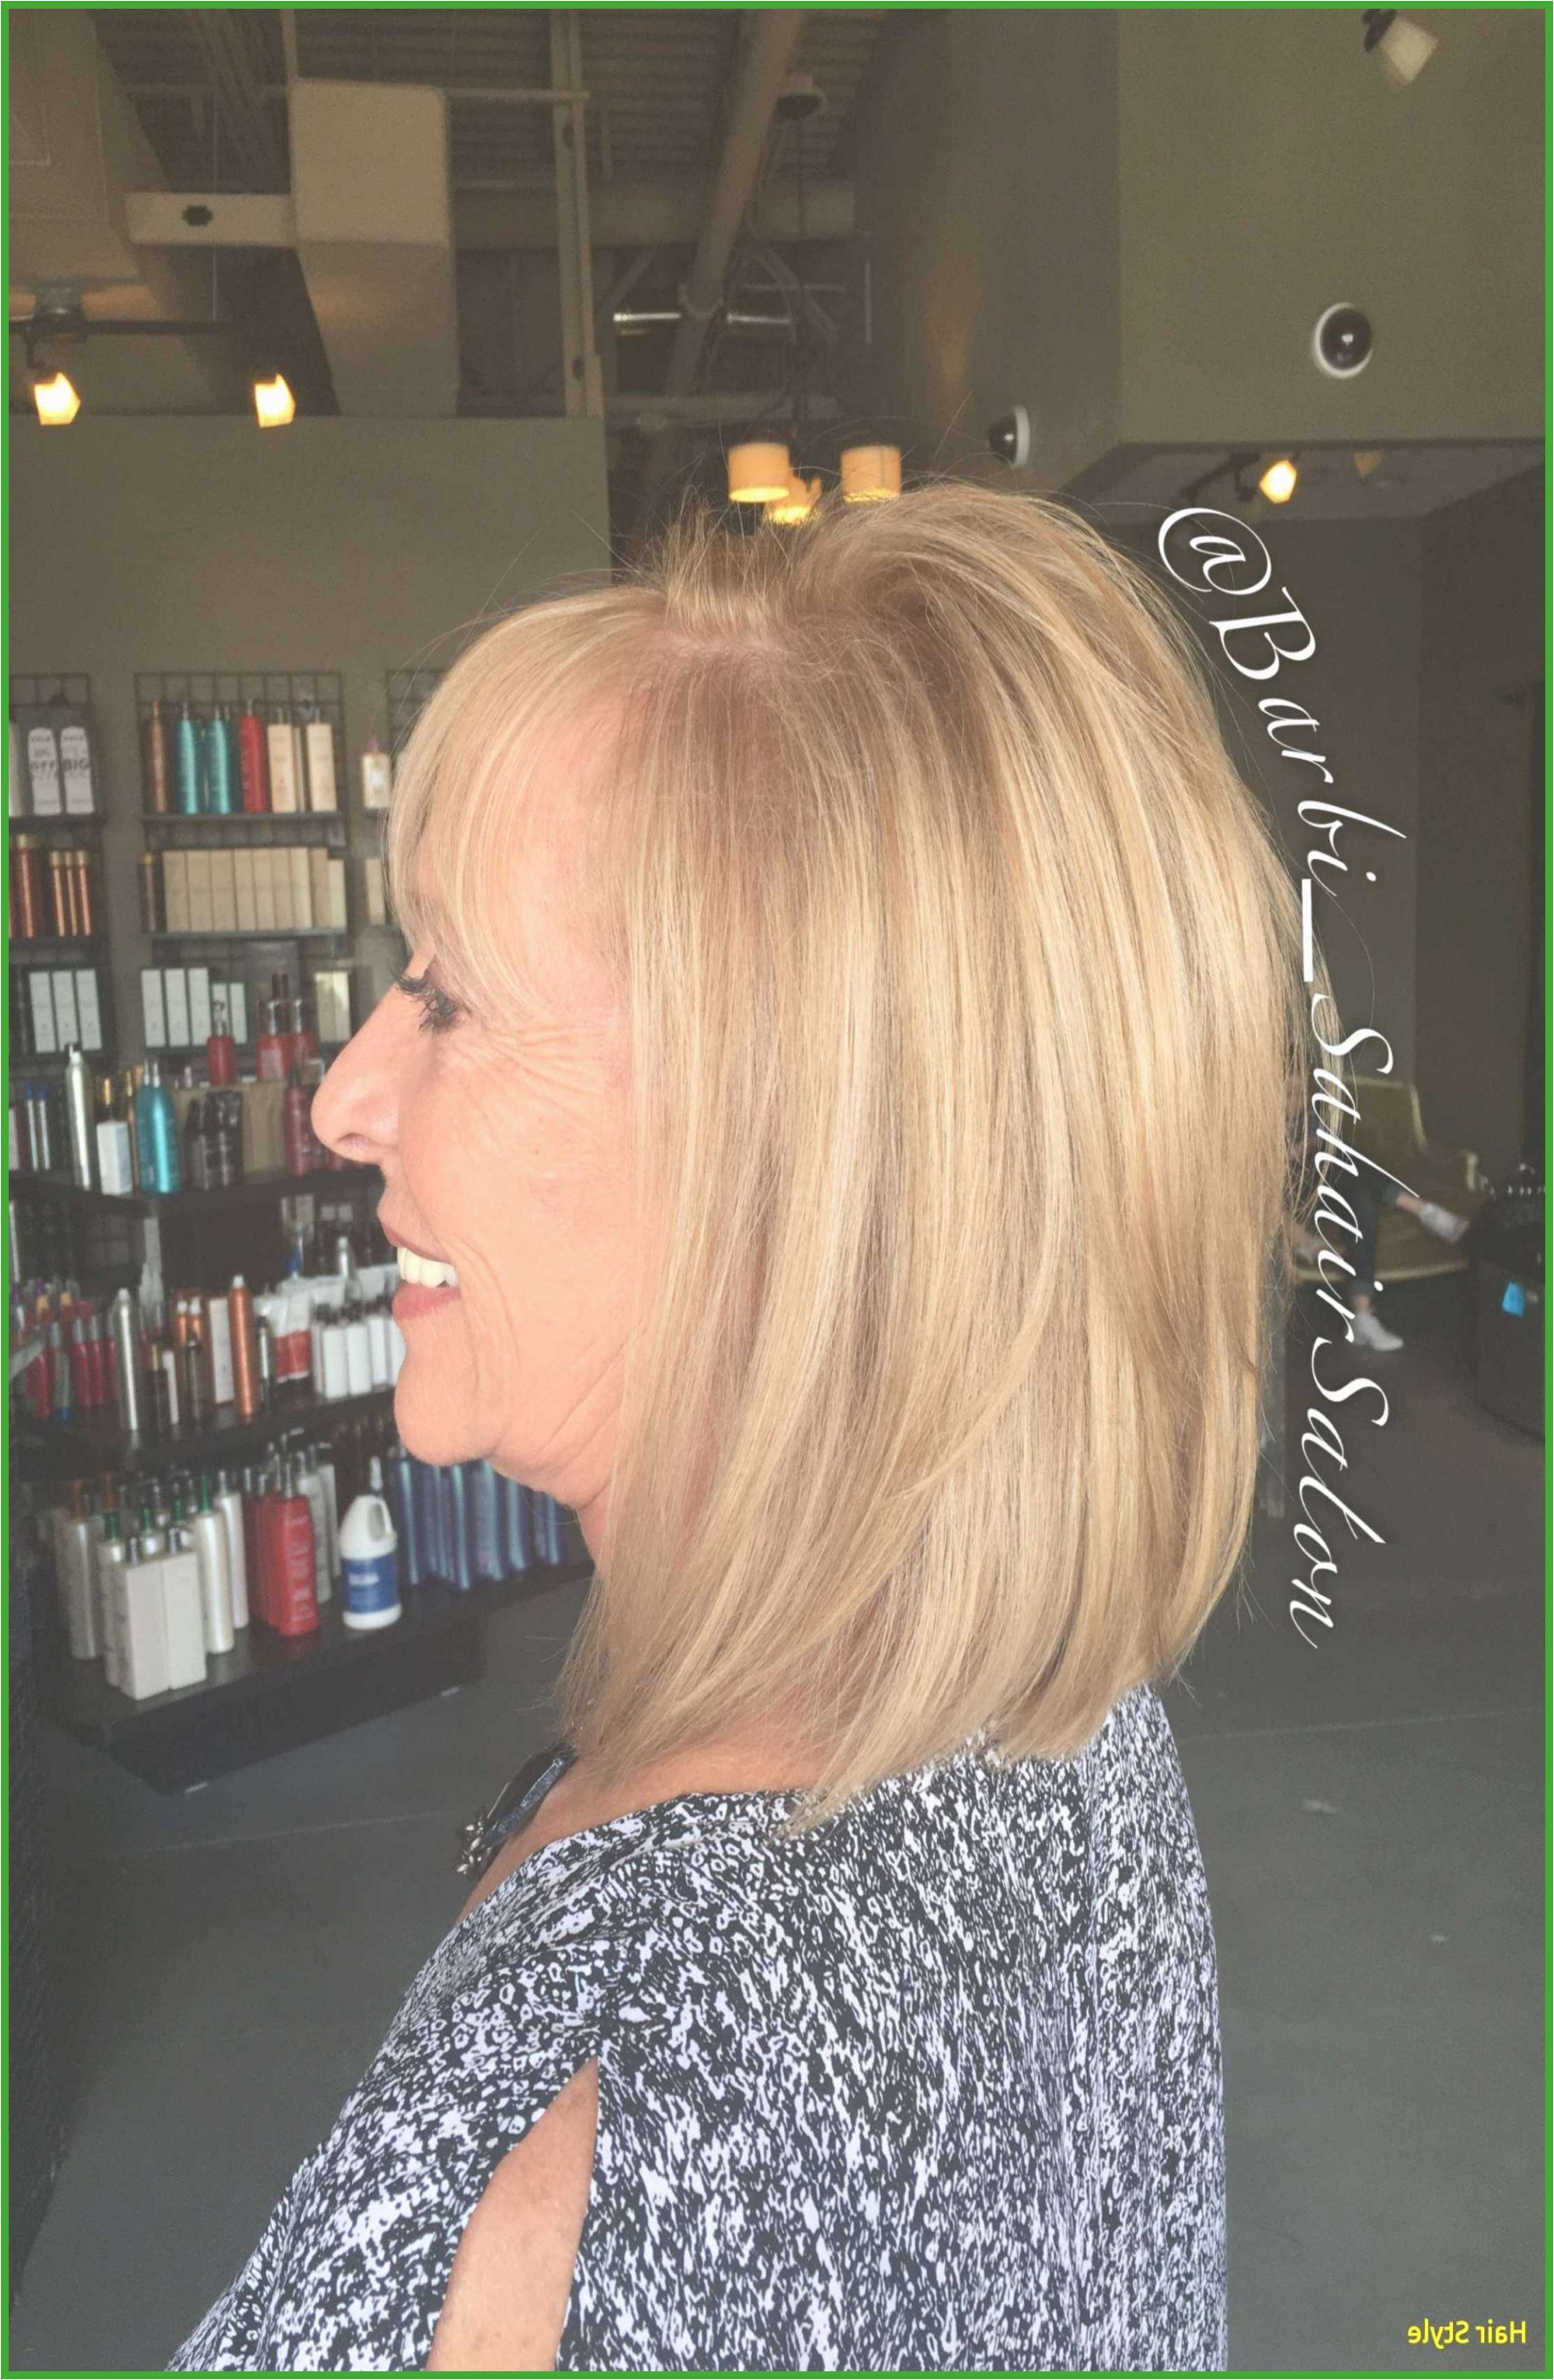 Girl Short Hairstyles For Round Faces New Fresh Medium Haircuts For Round Faces Over 50